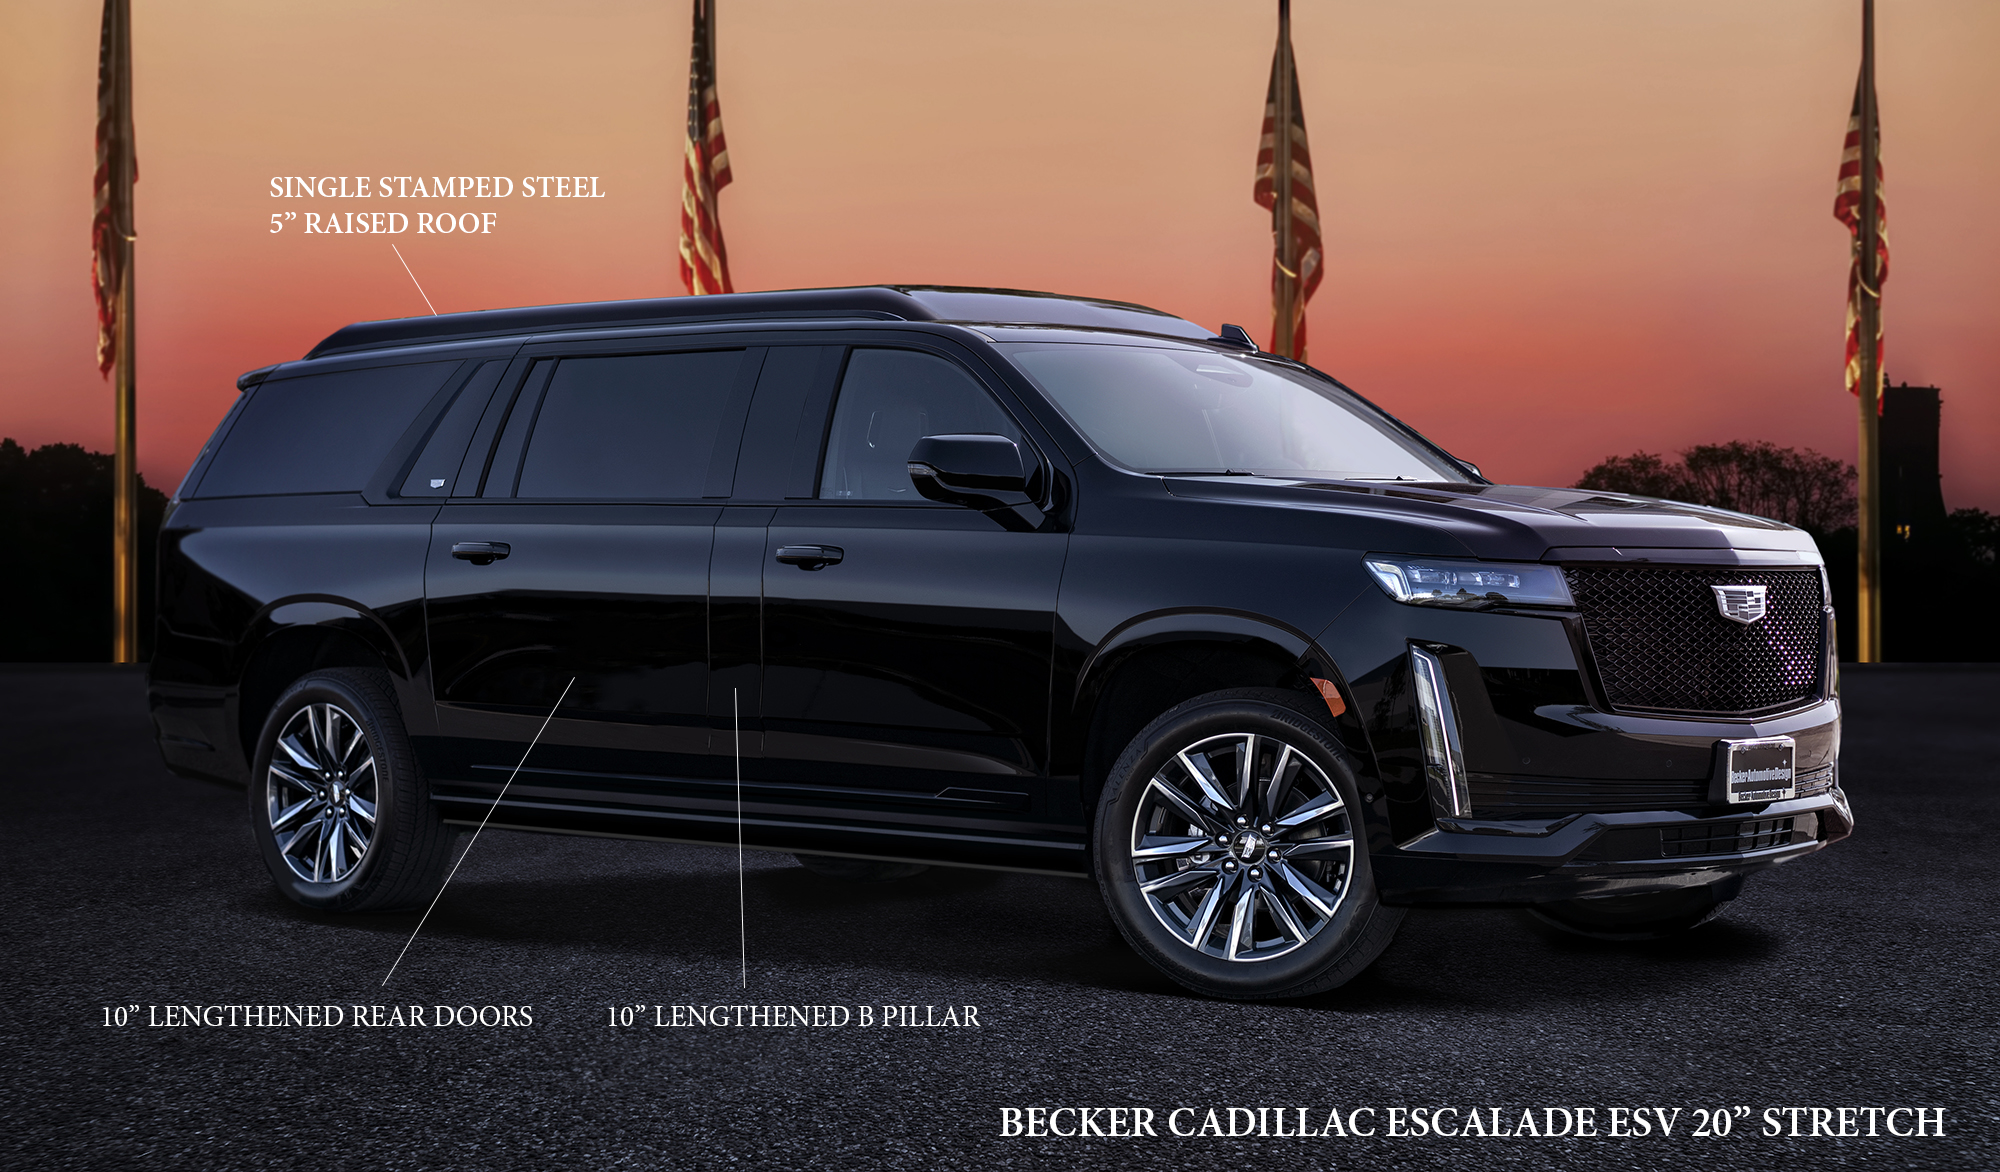 Escalade Platinum 2015 >> Becker Automotive Design // Luxury Transport Coaches // Sprinter Van and Cadillac ESV Conversions